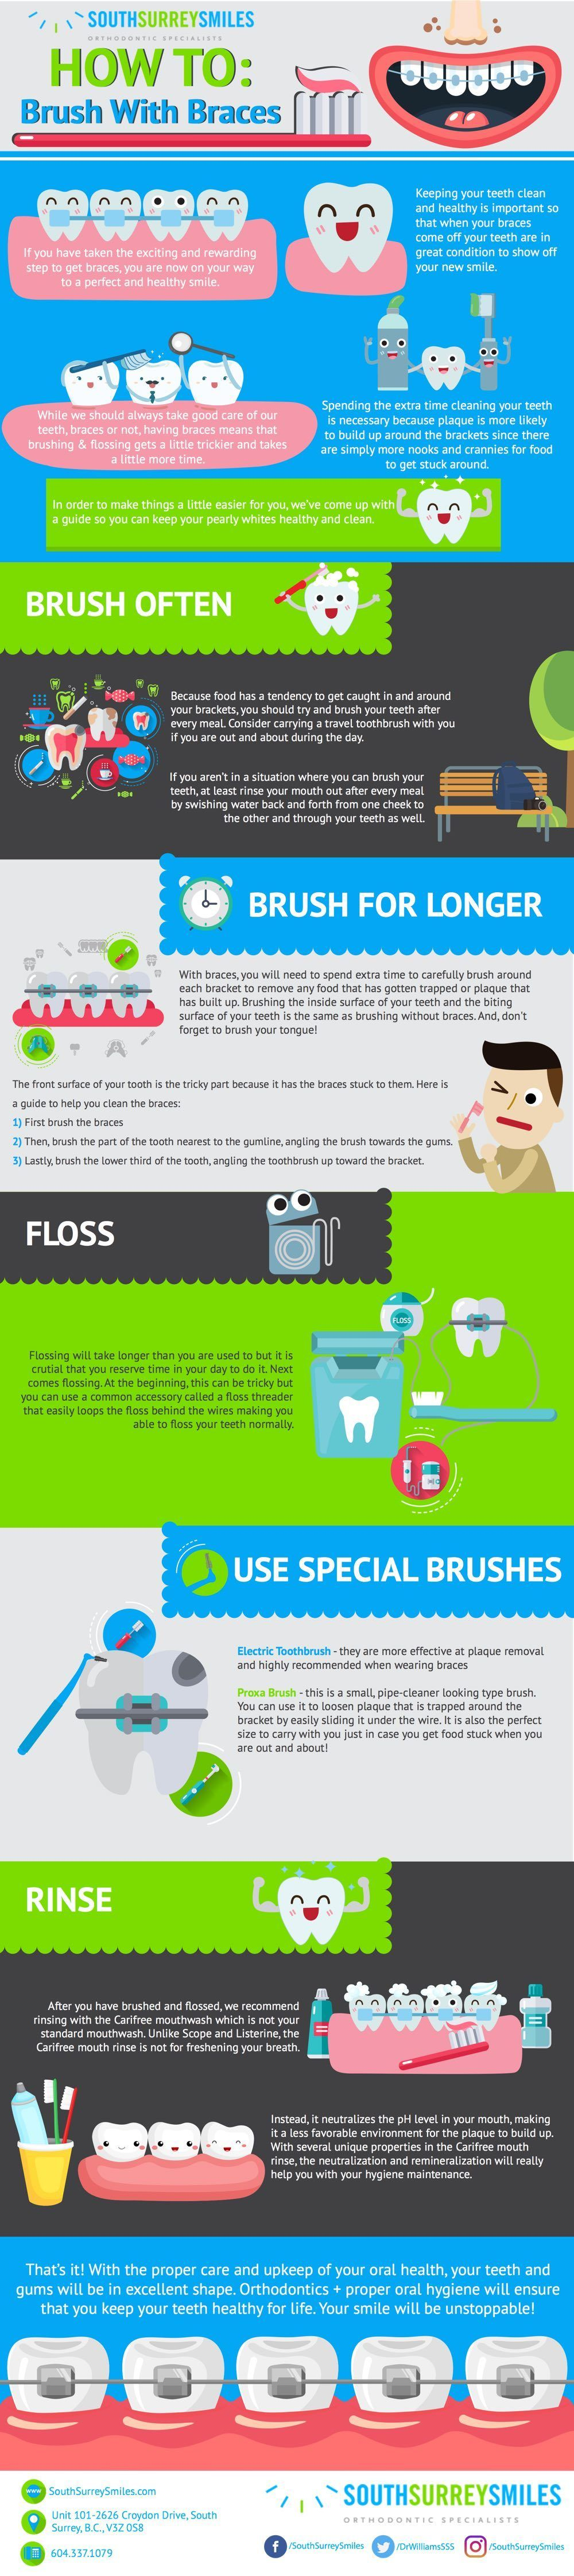 how-to-brush-with-braces